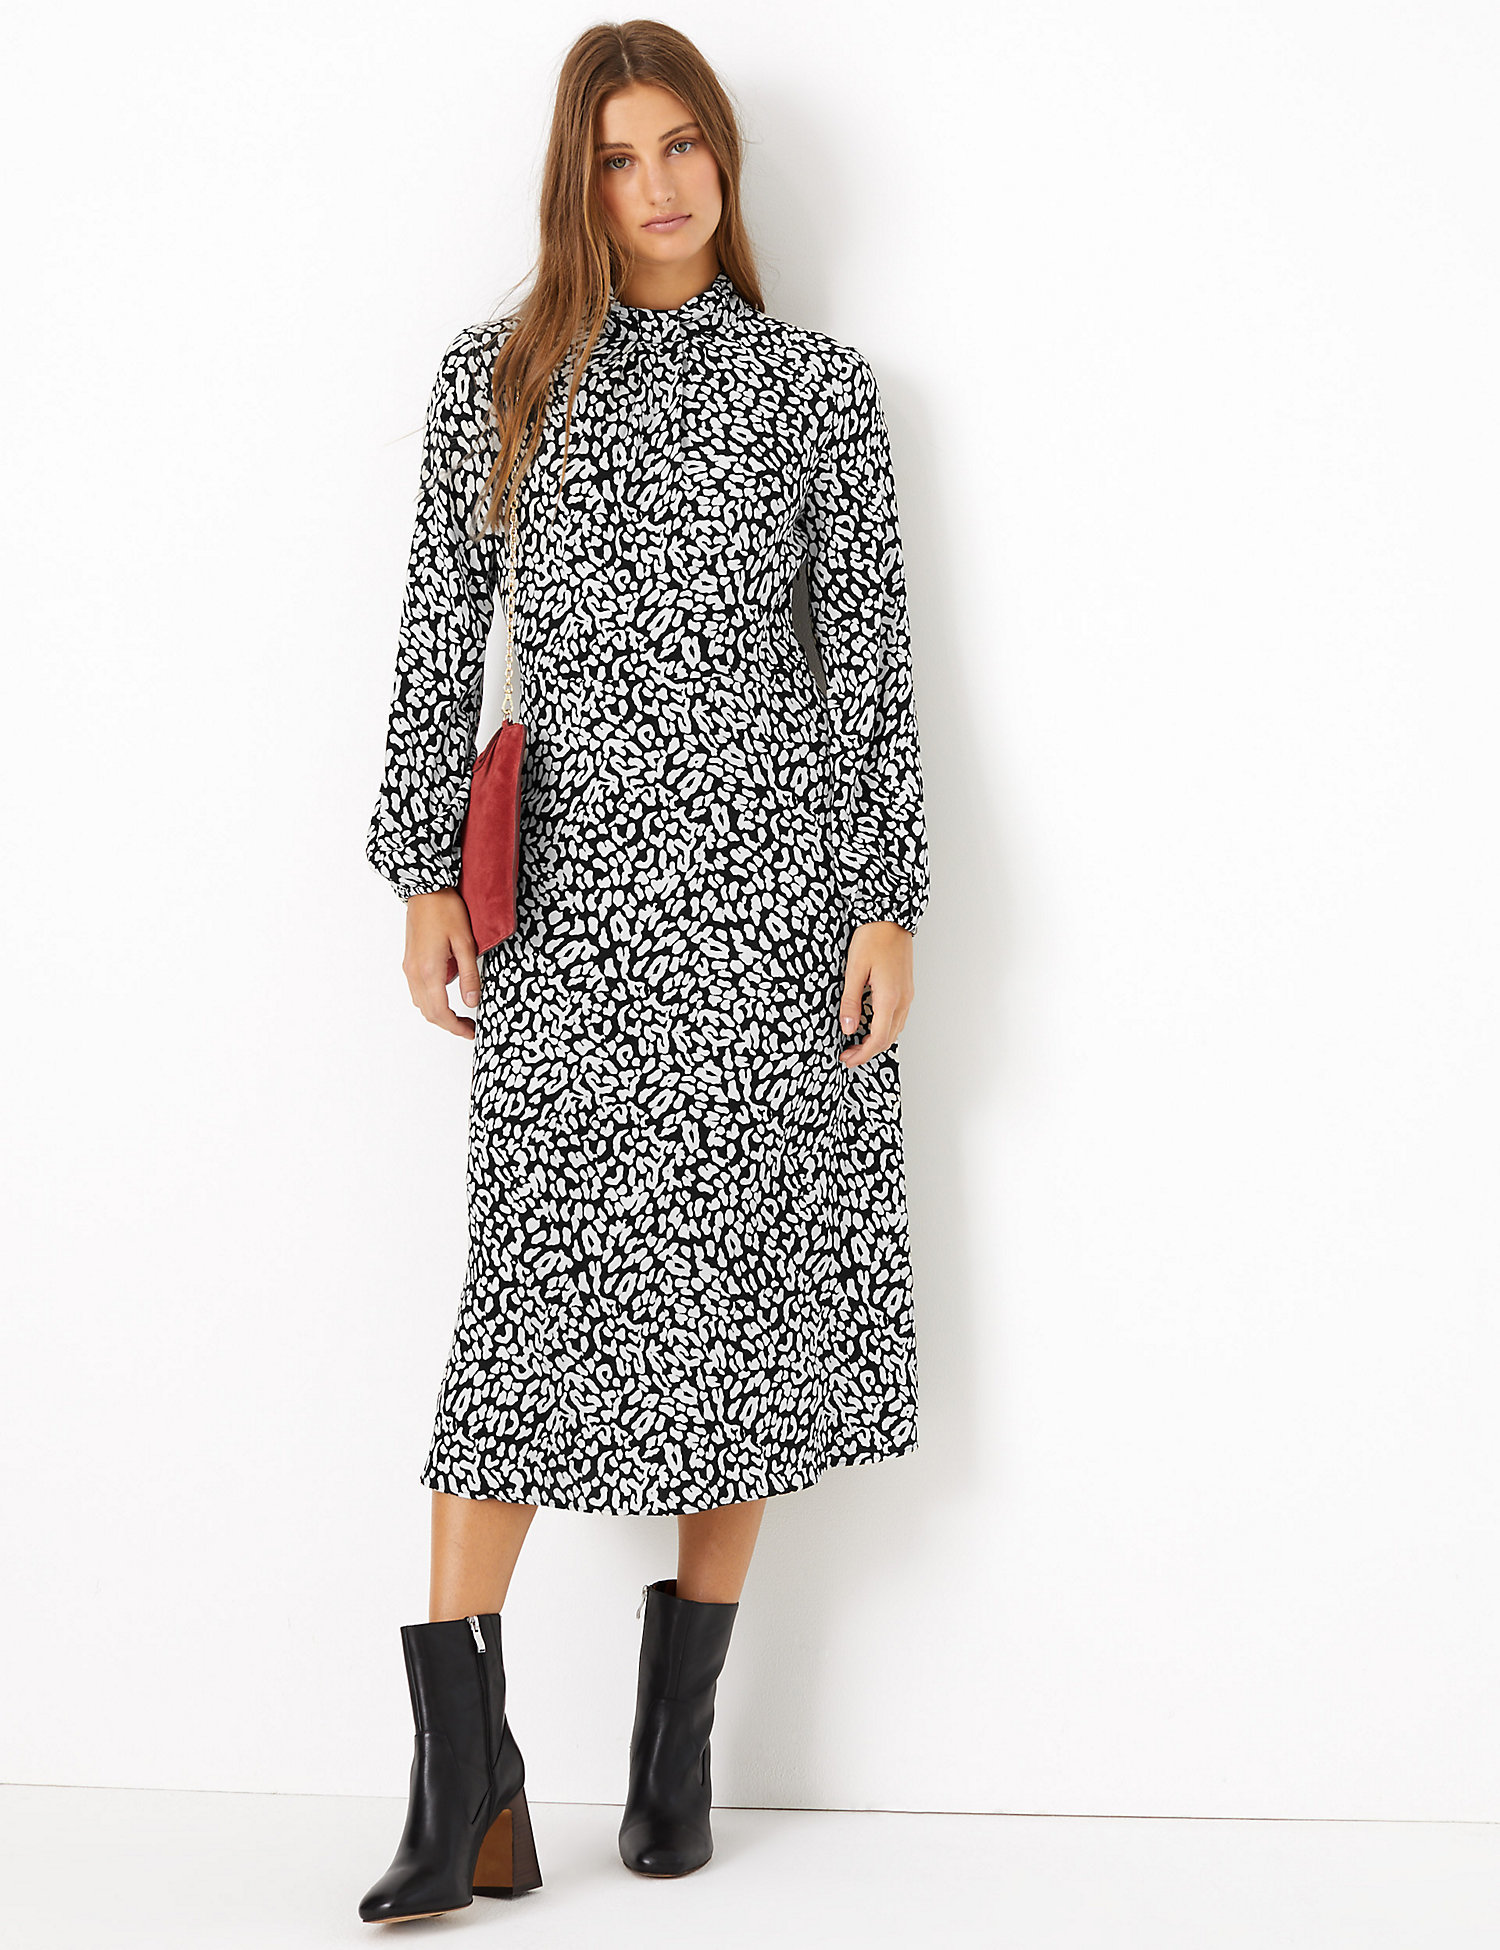 M&S Animal Printed relaxed midi dress £49.50